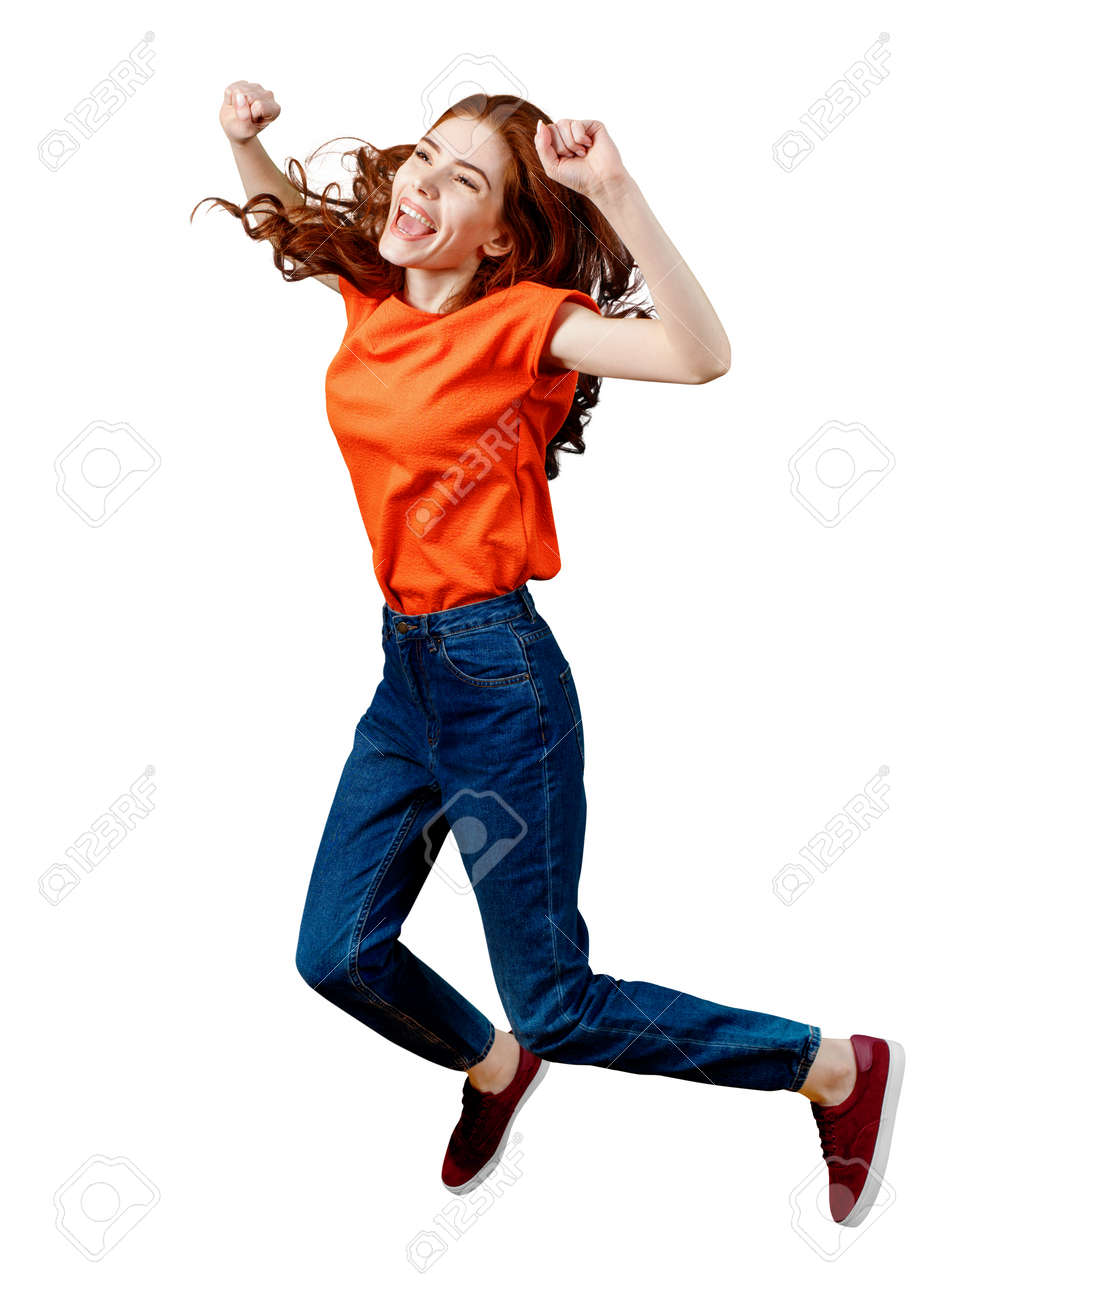 Full length happy ginger woman in shirt and jeans jumping. - 120492778